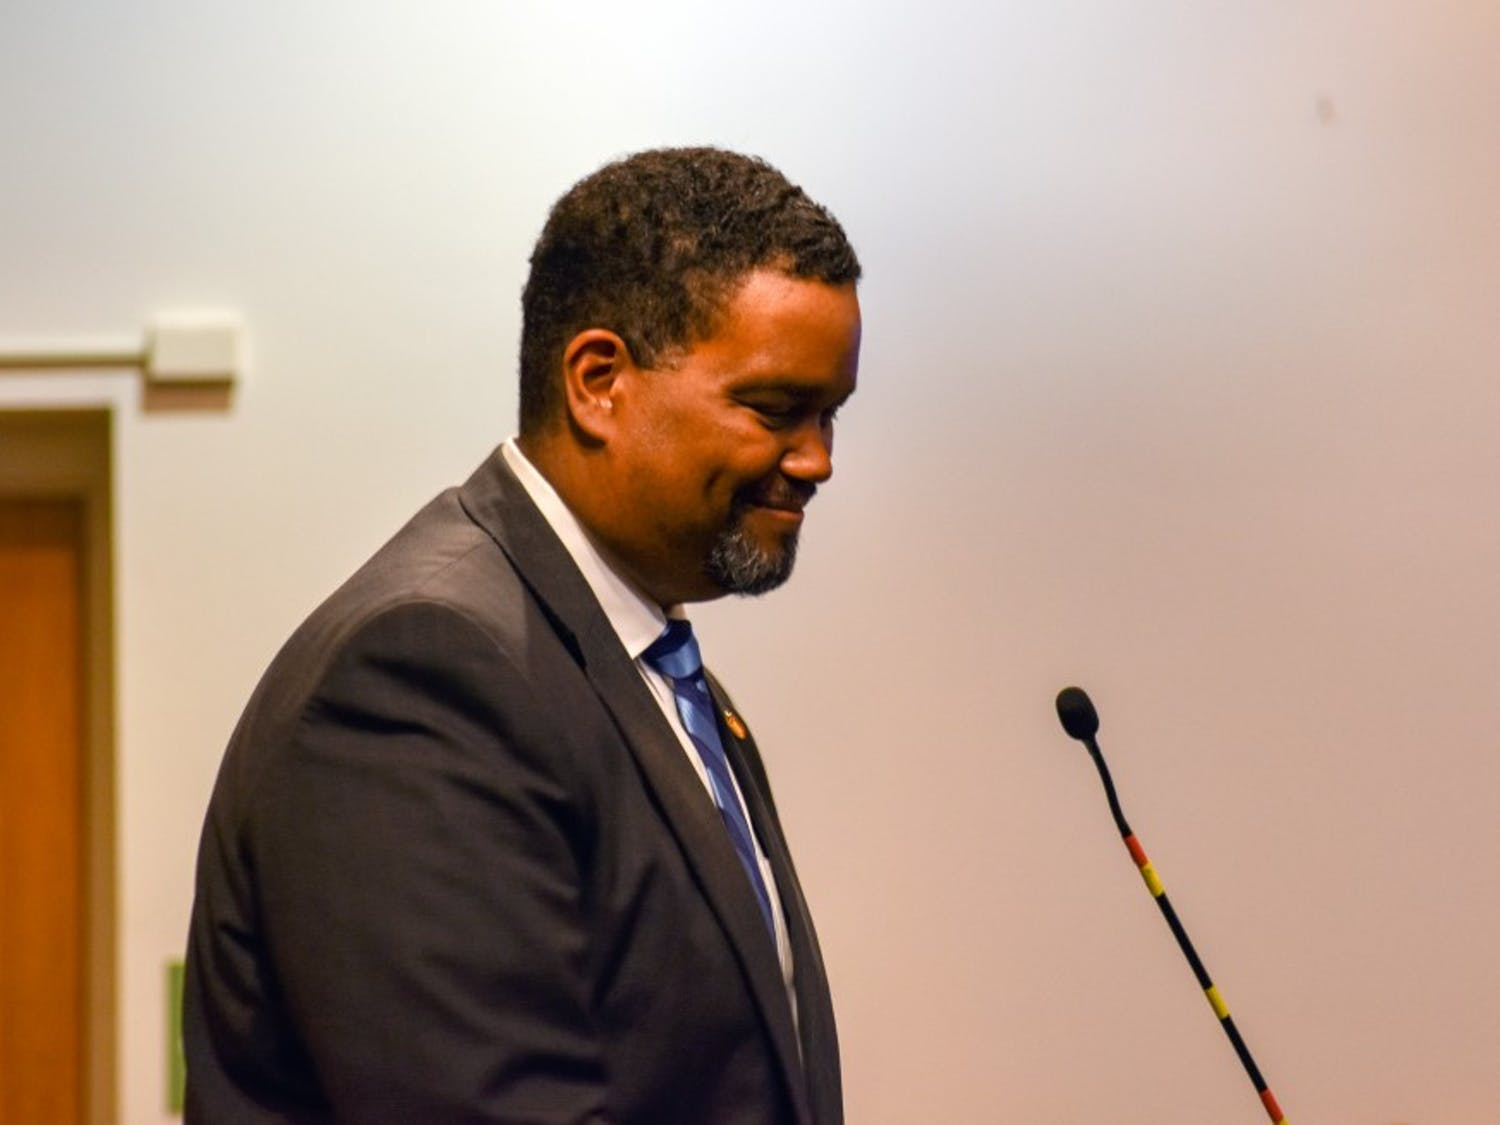 Maurice Jones, newly appointed Town Manager, addresses the Town Council of Chapel Hill.